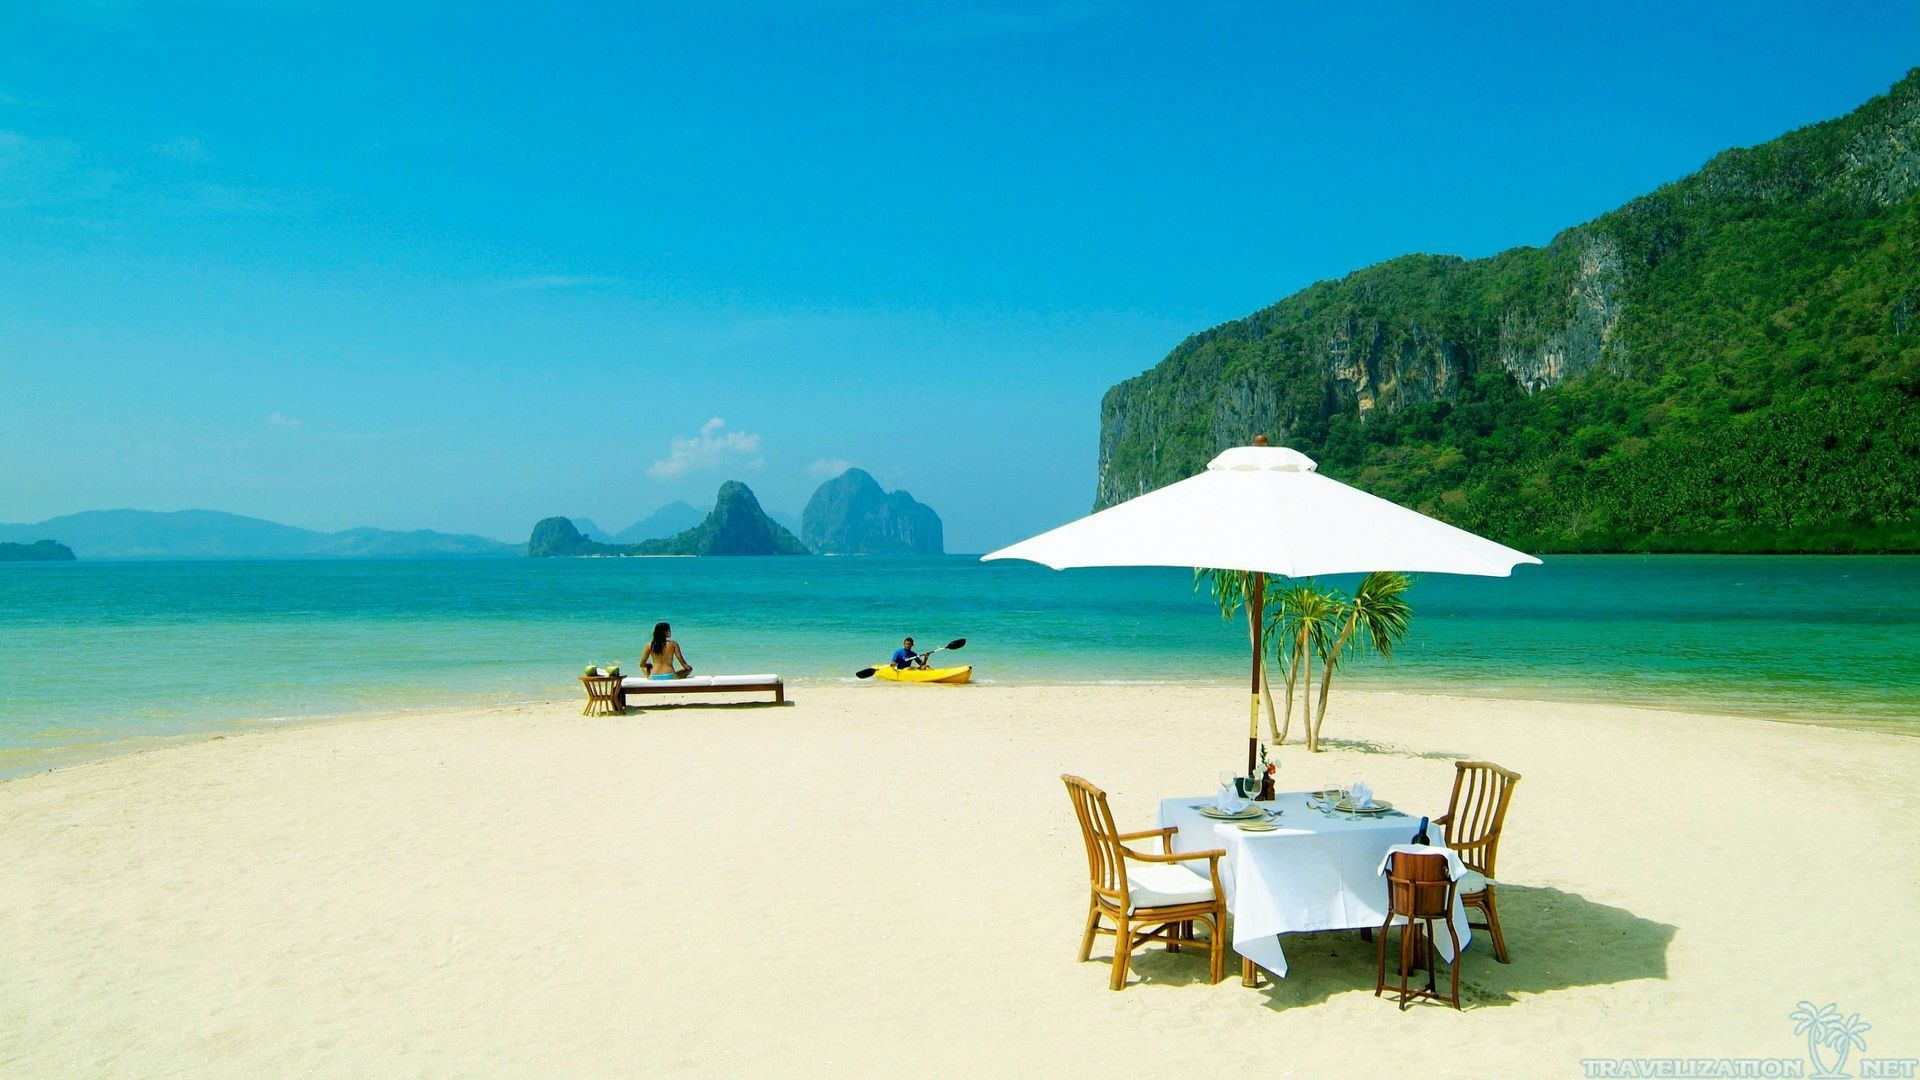 Most Exotic And Relaxing Beach Wallpapers   Travelization